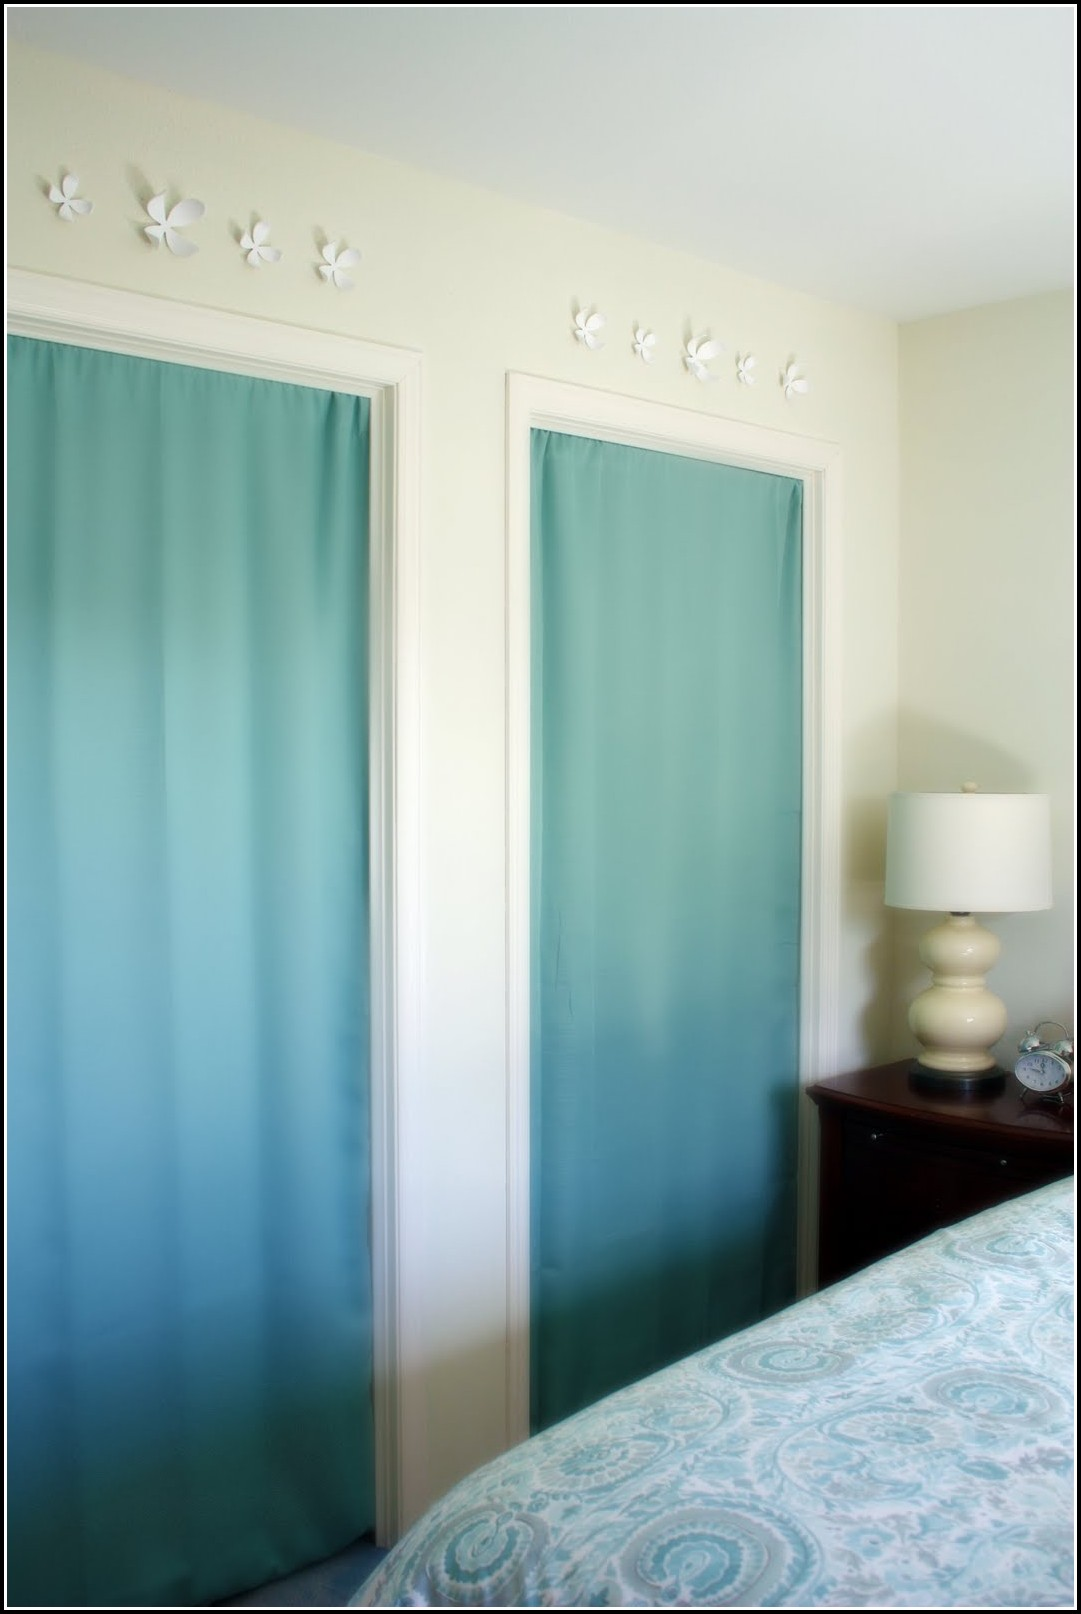 Tension Rods For Curtains Australia